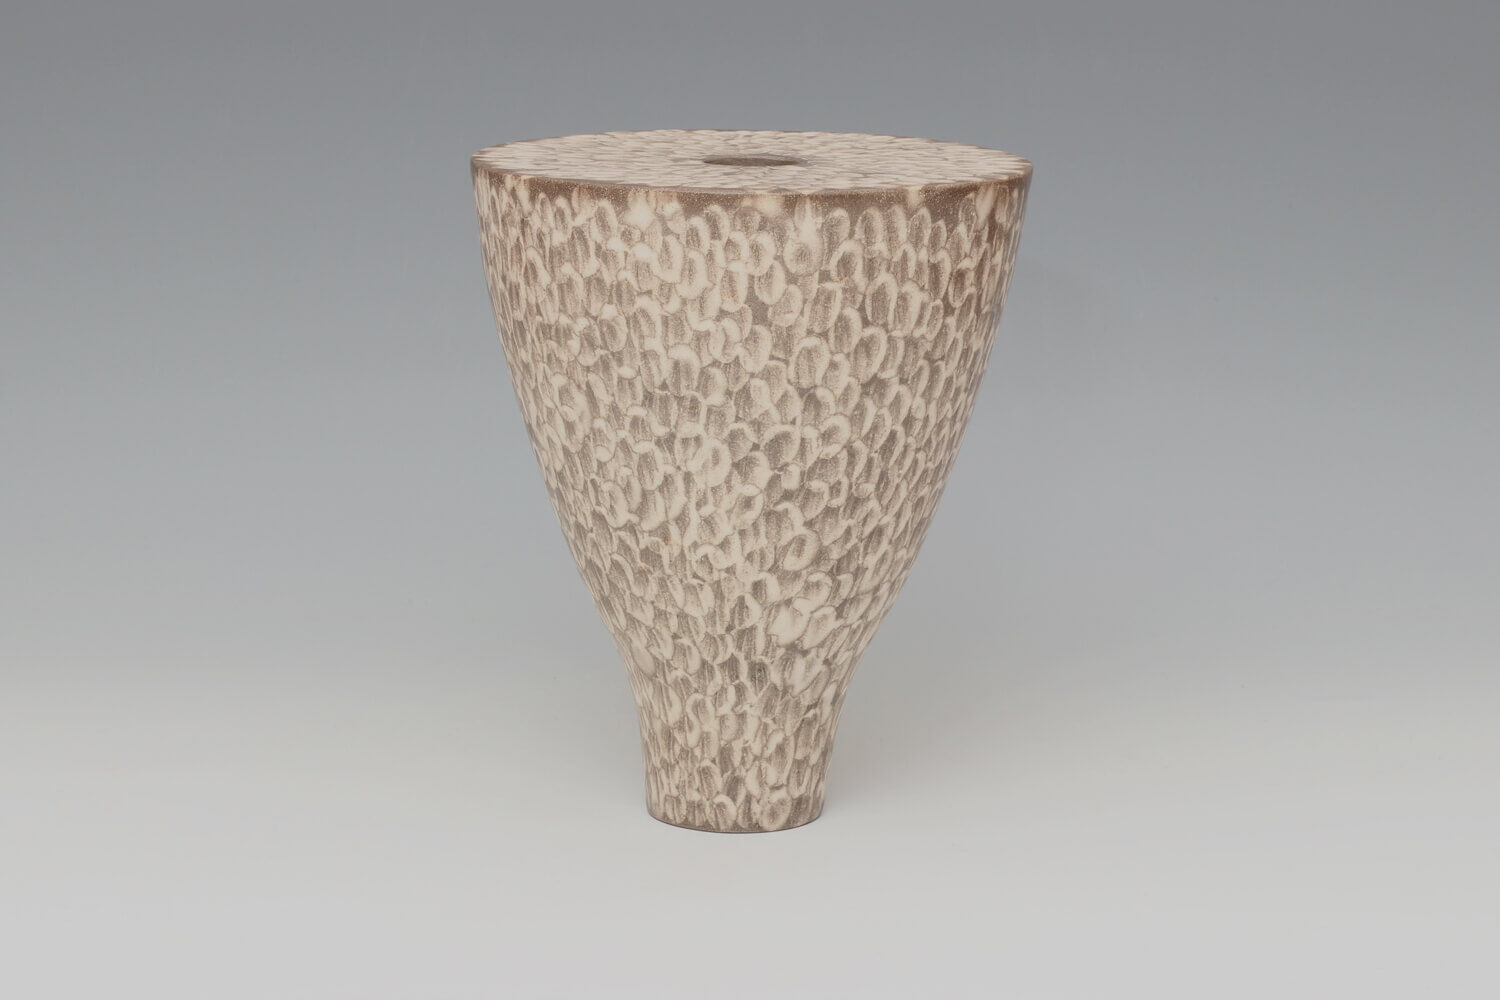 Lara De Sio Ceramic 'Drum Vessel' 01